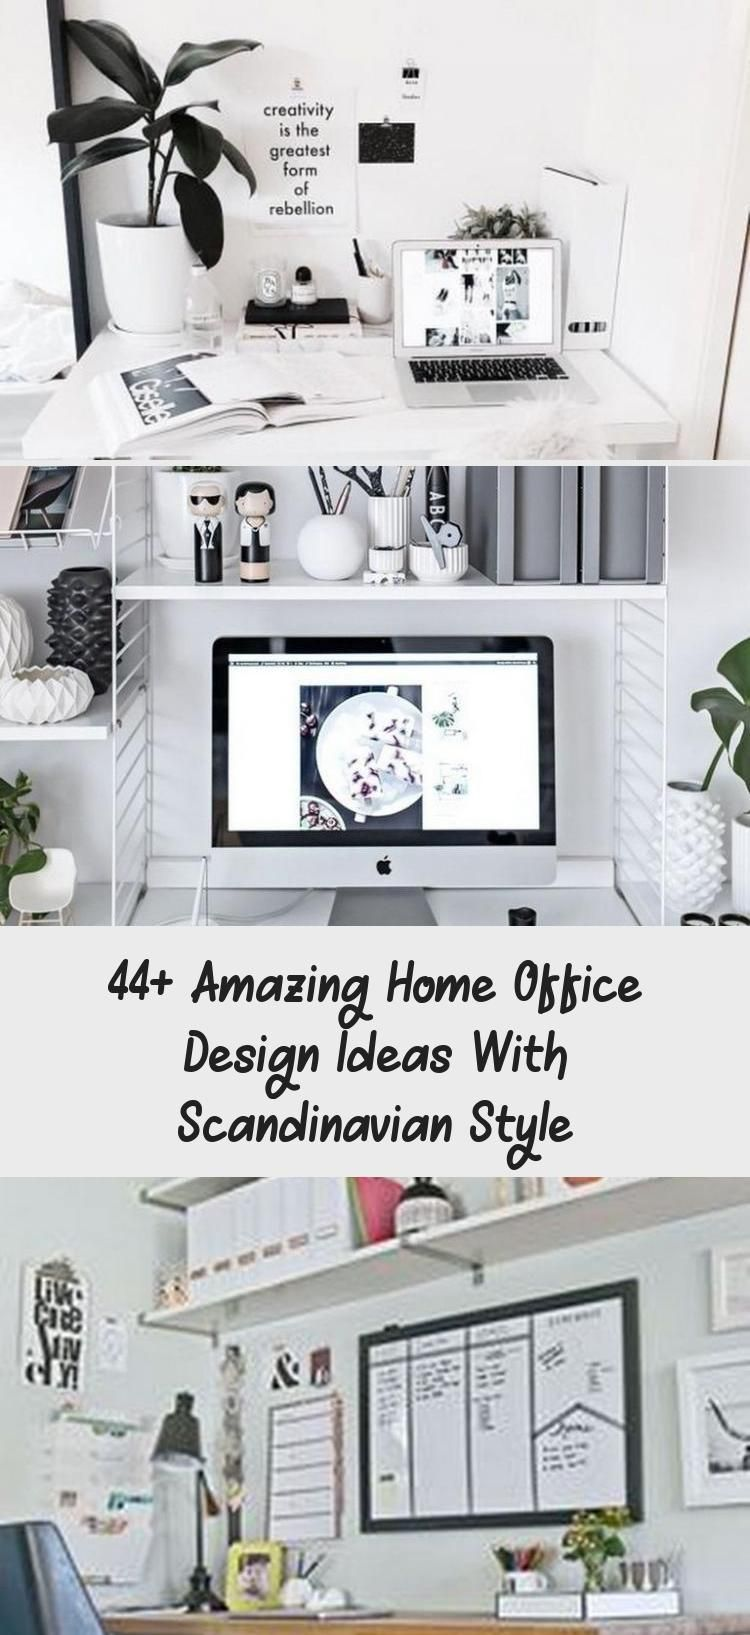 44 Amazing Home Office Design Ideas With Scandinavian Style Bilgi Tahtasi 44 Amazing Home Office Desig In 2020 Office Inspiration Office Design Home Office Design